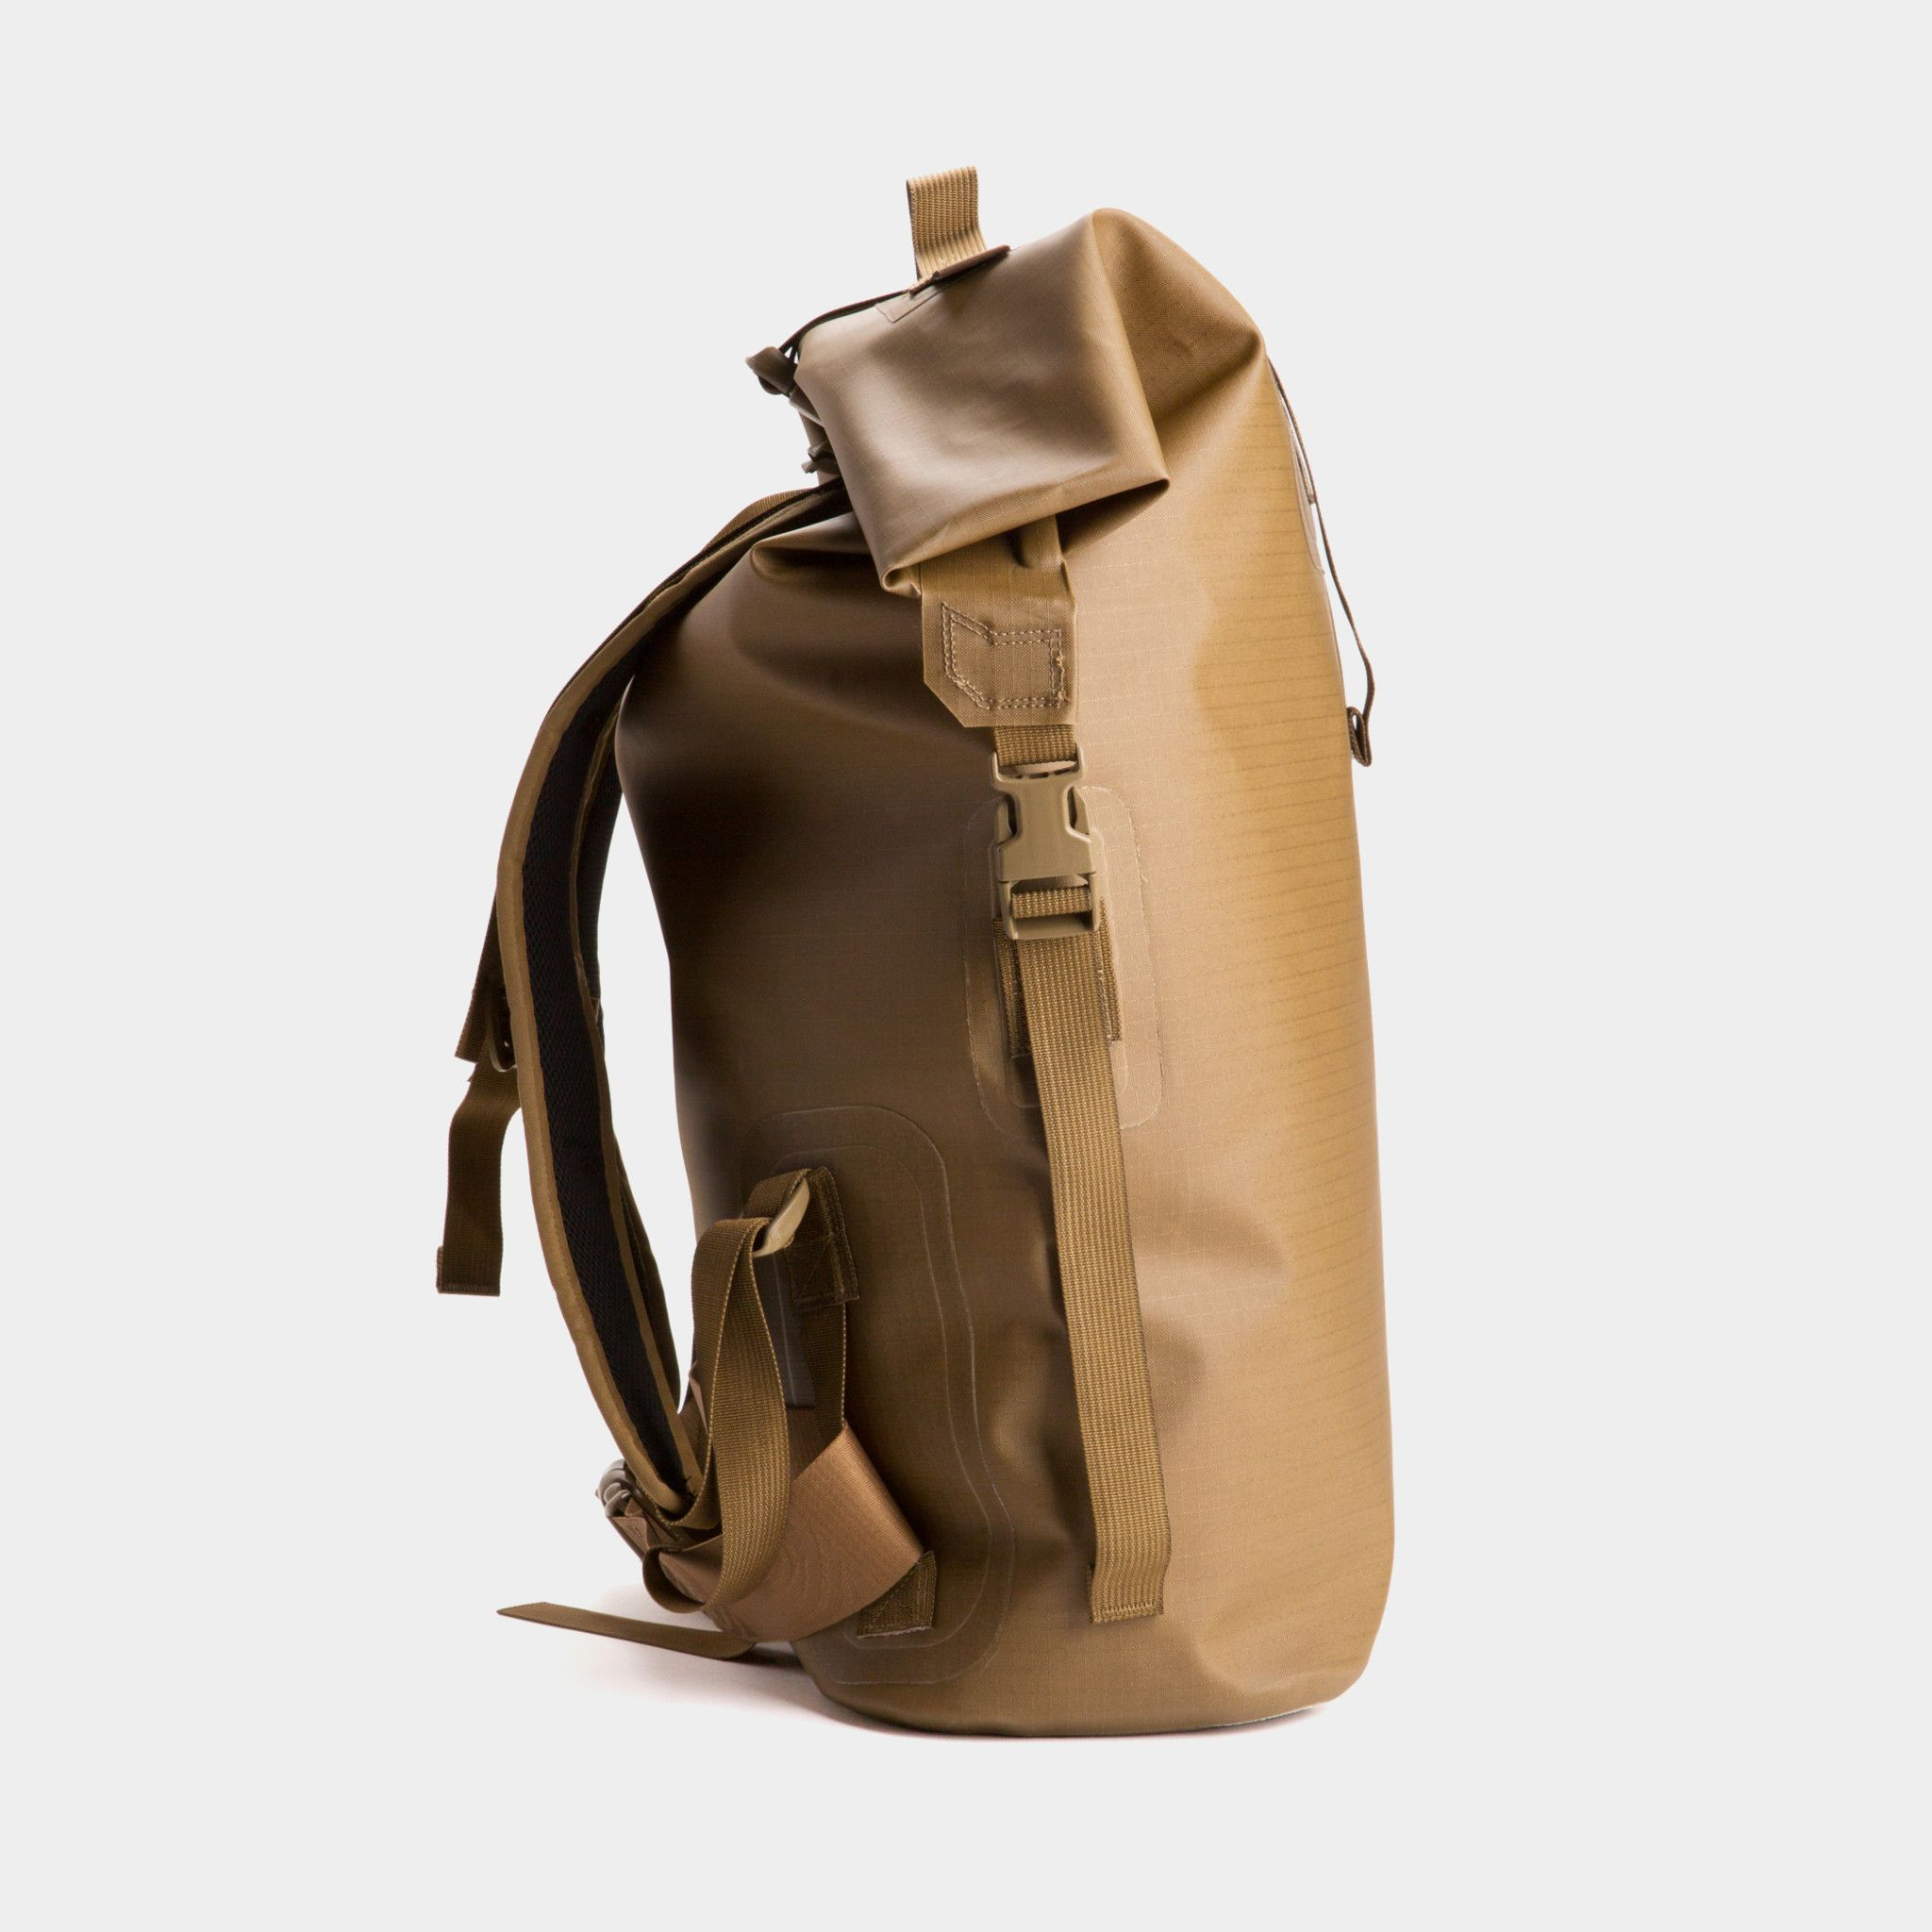 86d18403ce8 The Watershed Animas Dry Bag Backpack by Best Made Co.   Bags ...